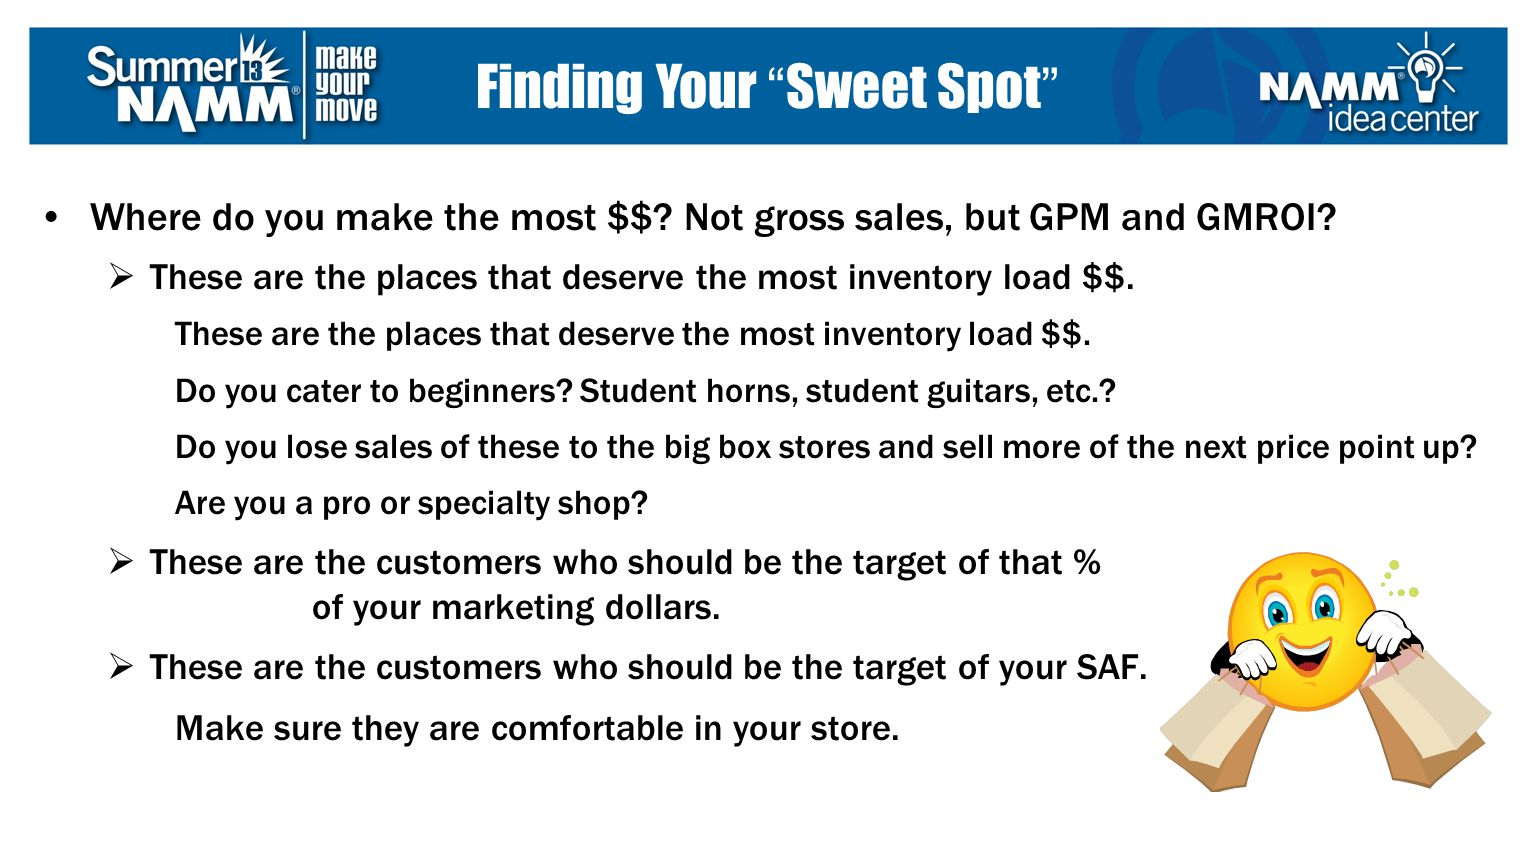 Where do you make the most $$. Not gross sales, but GPM and GMROI.